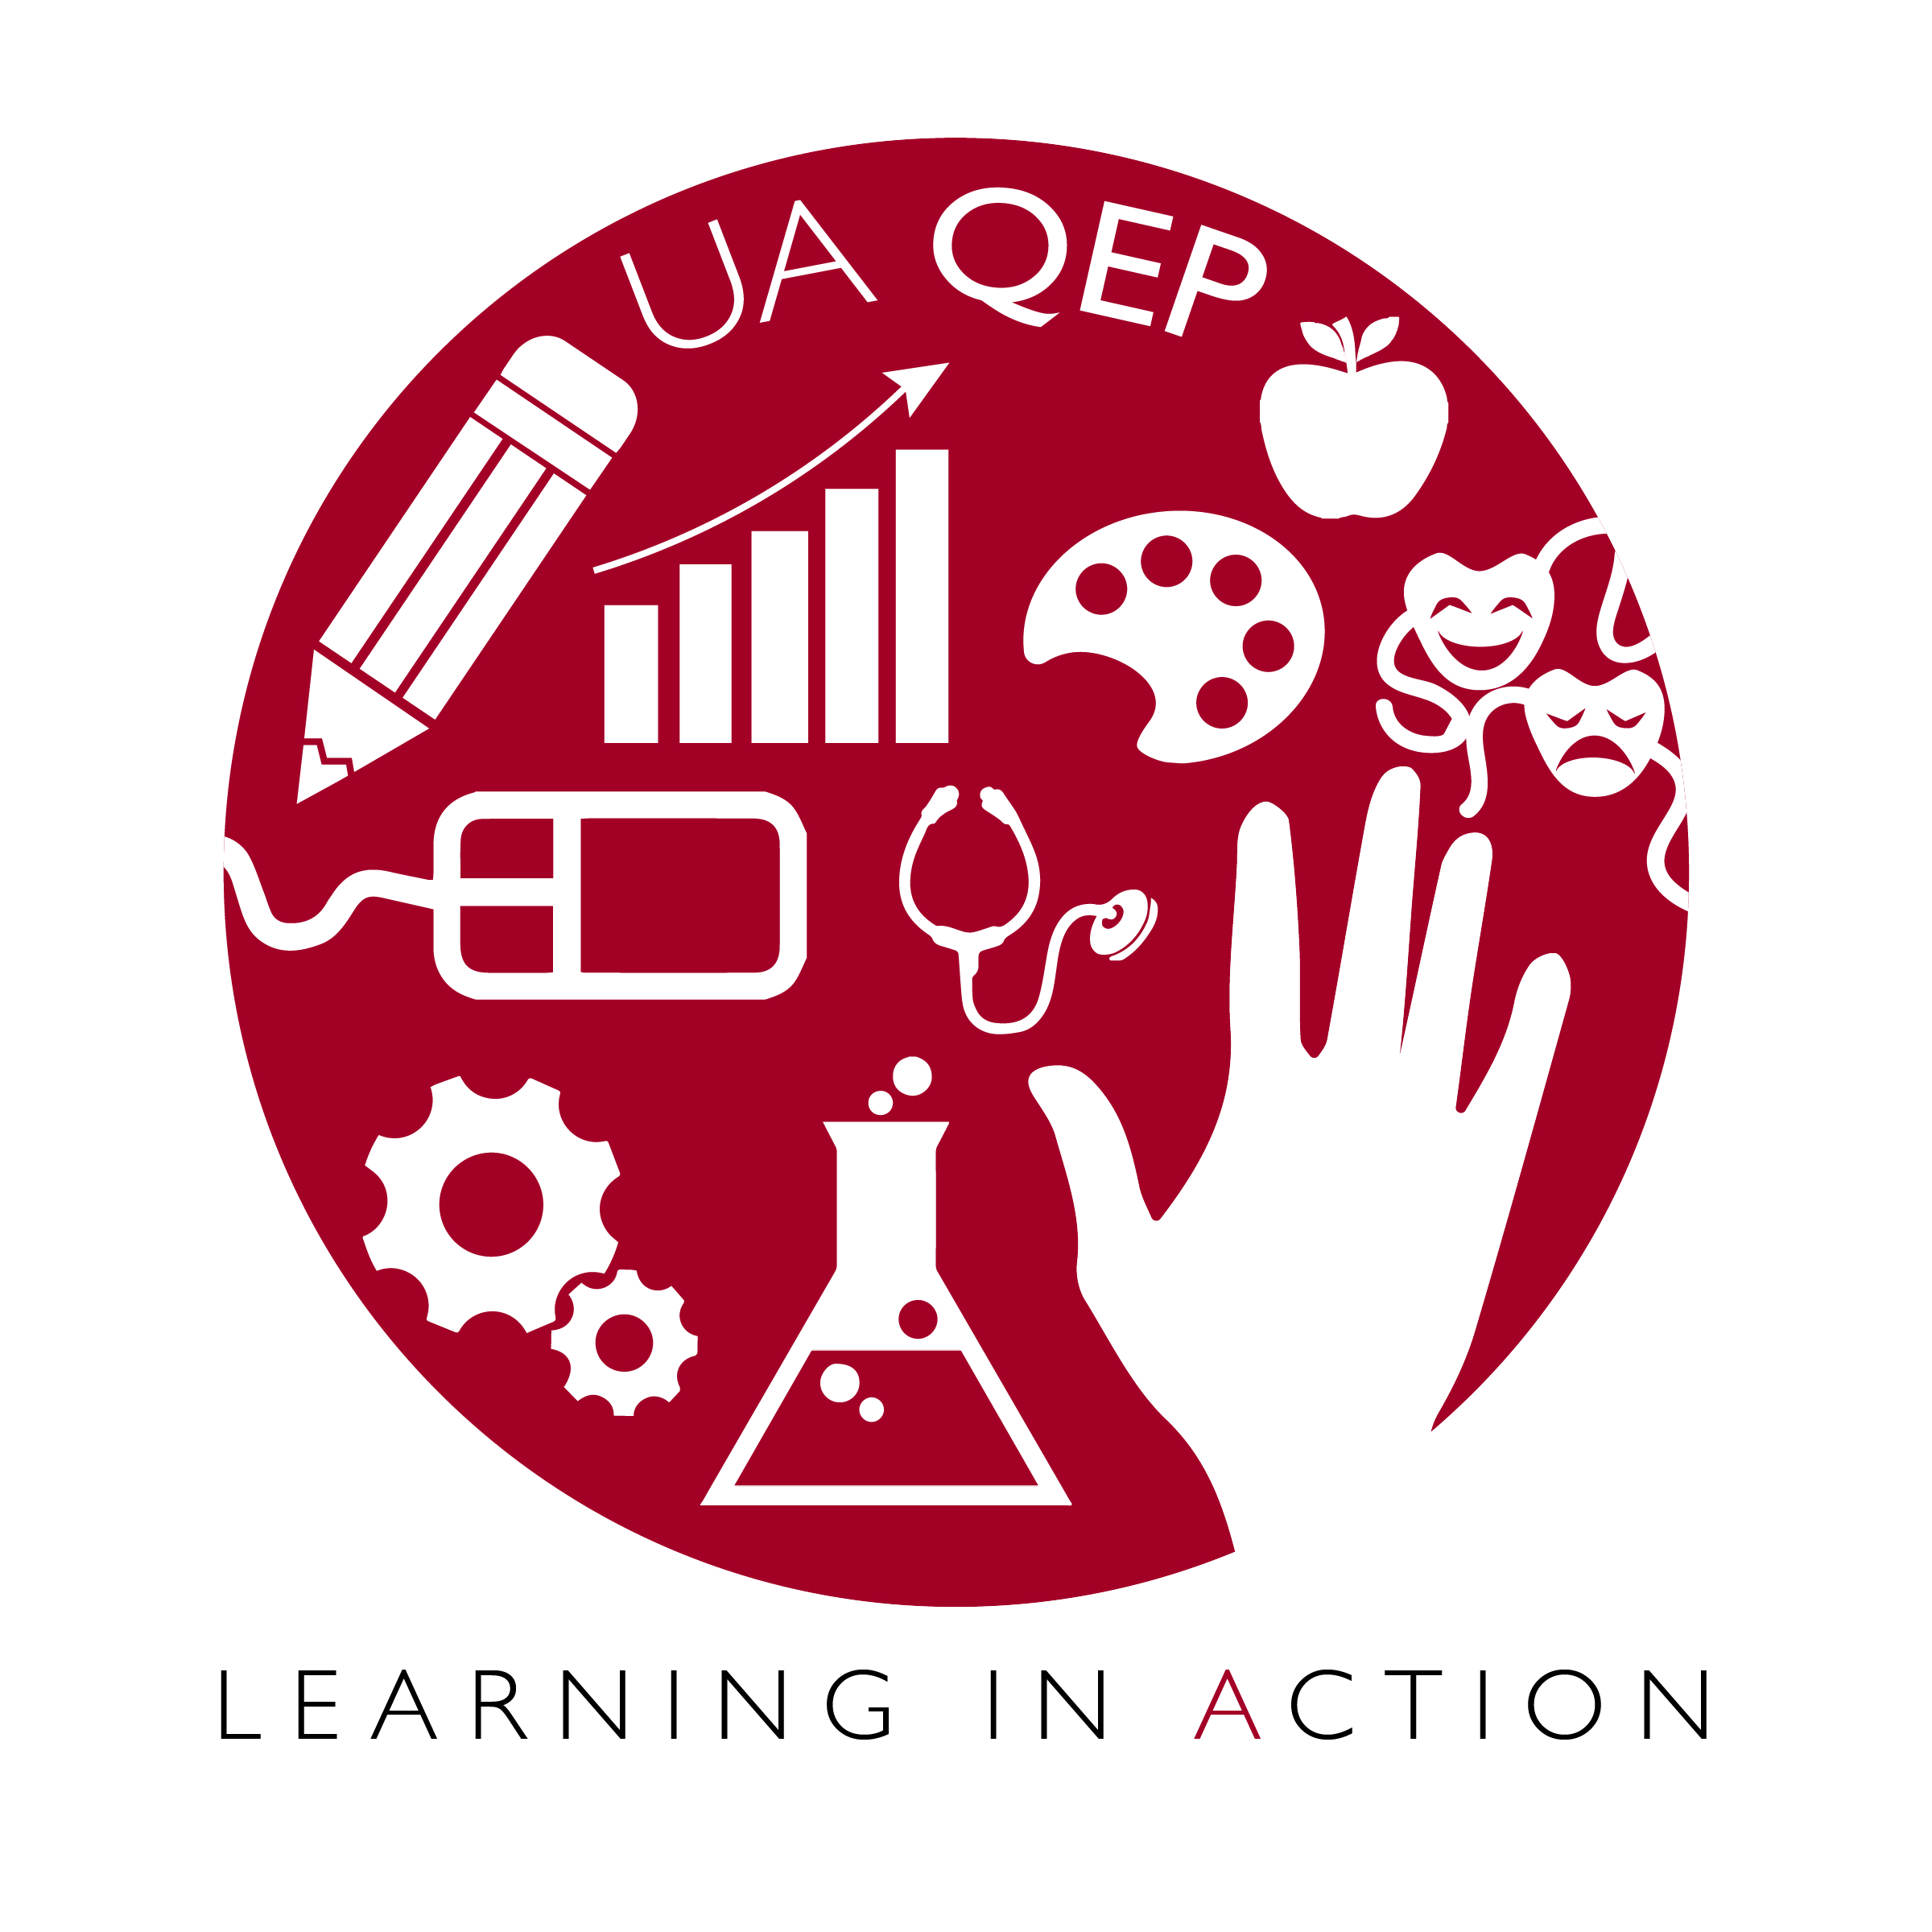 - The Quality Enhancement Plan (QEP): Learning in Action is a five-year plan to increase awareness of experiential learning opportunities on campus. Capstone Agency's goal is to raise faculty awareness of and engagement with the QEP so they provide more high-quality experiential learning courses for students and participate in workshops/seminars to certify those courses. Secondly, Capstone Agency is promoting the QEP to students, so they will be more aware of what experiential learning opportunities are and how these opportunities can benefit them in the future.